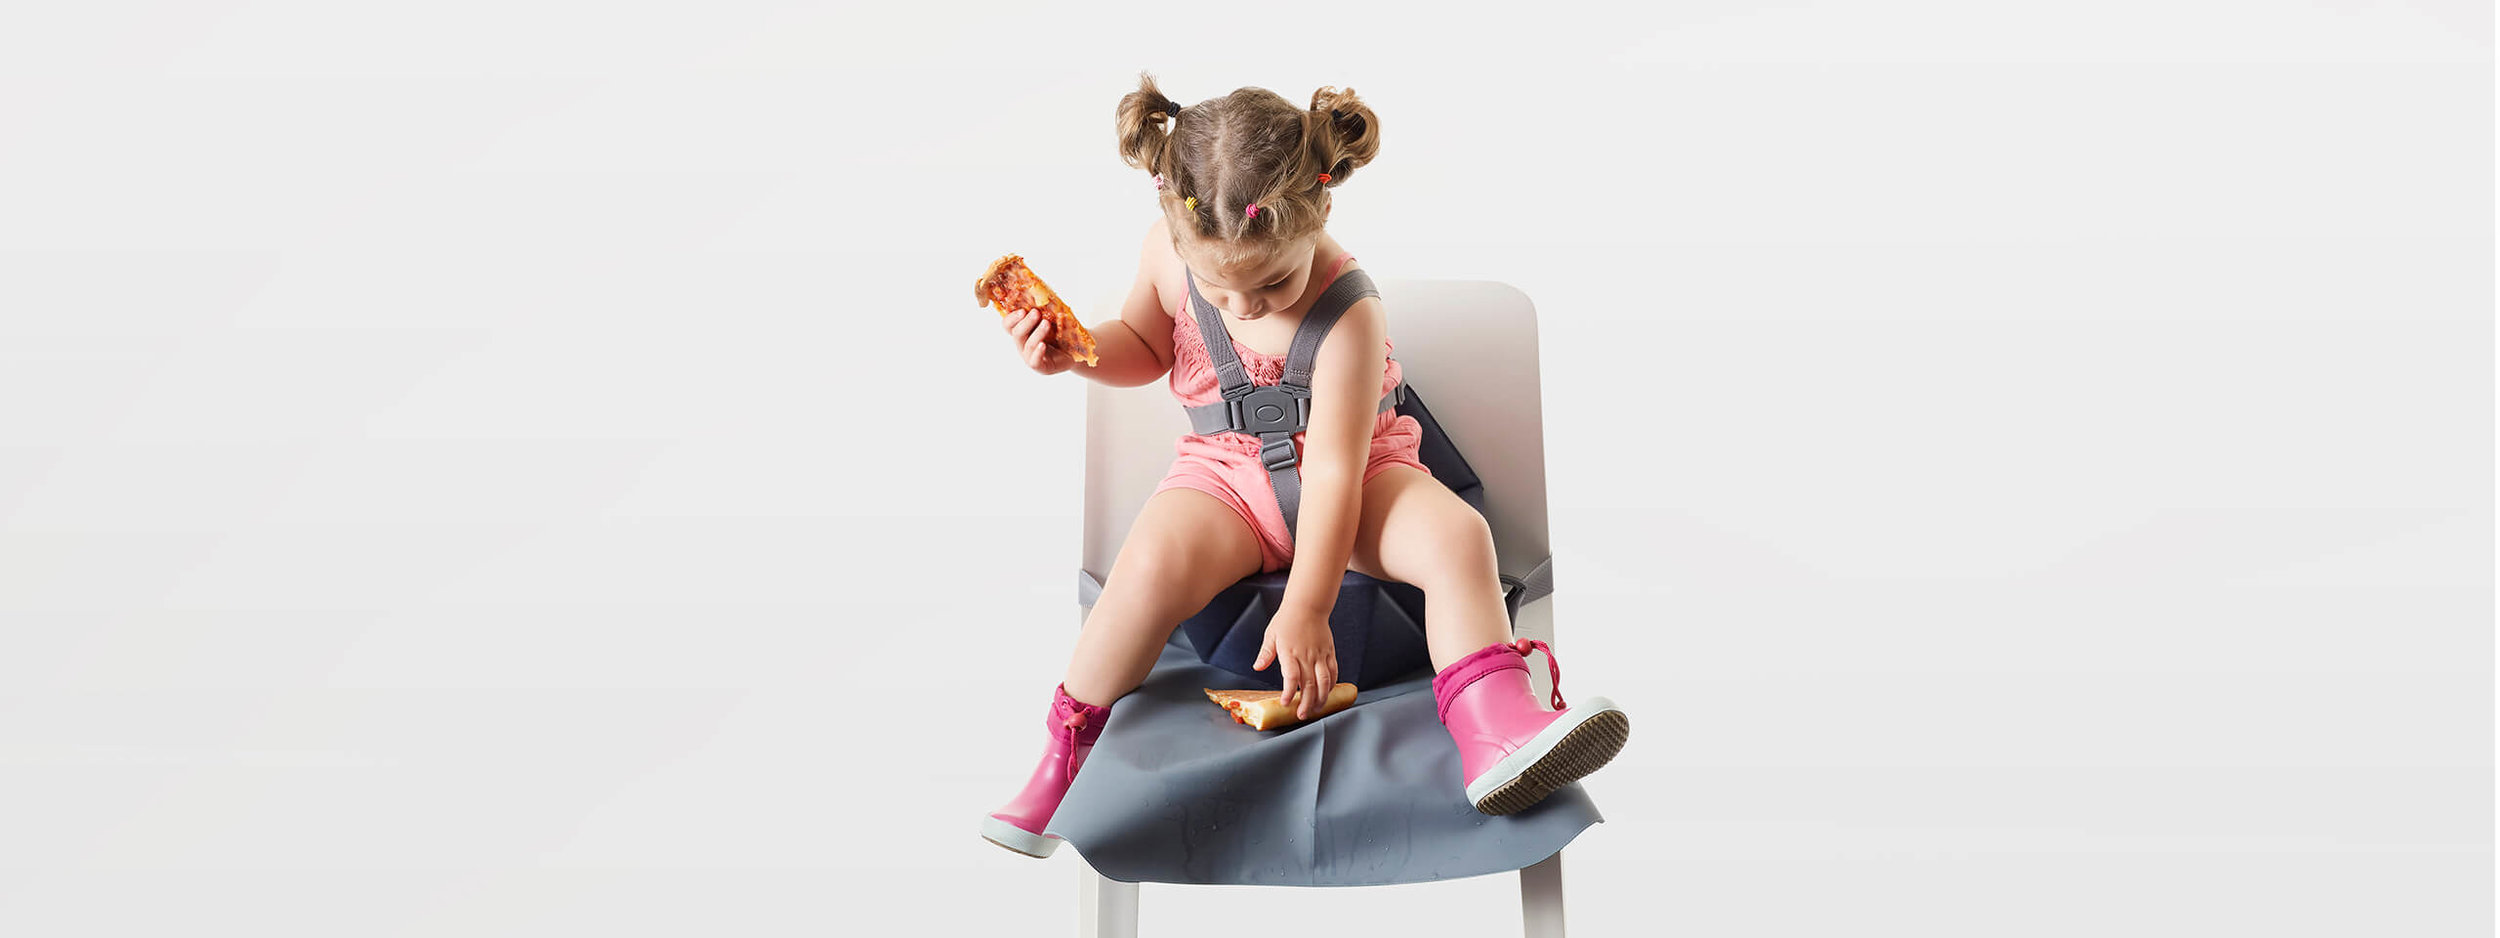 Bombol-Pop-Up-foldable-booster-seat-kid-with-pizza.jpg